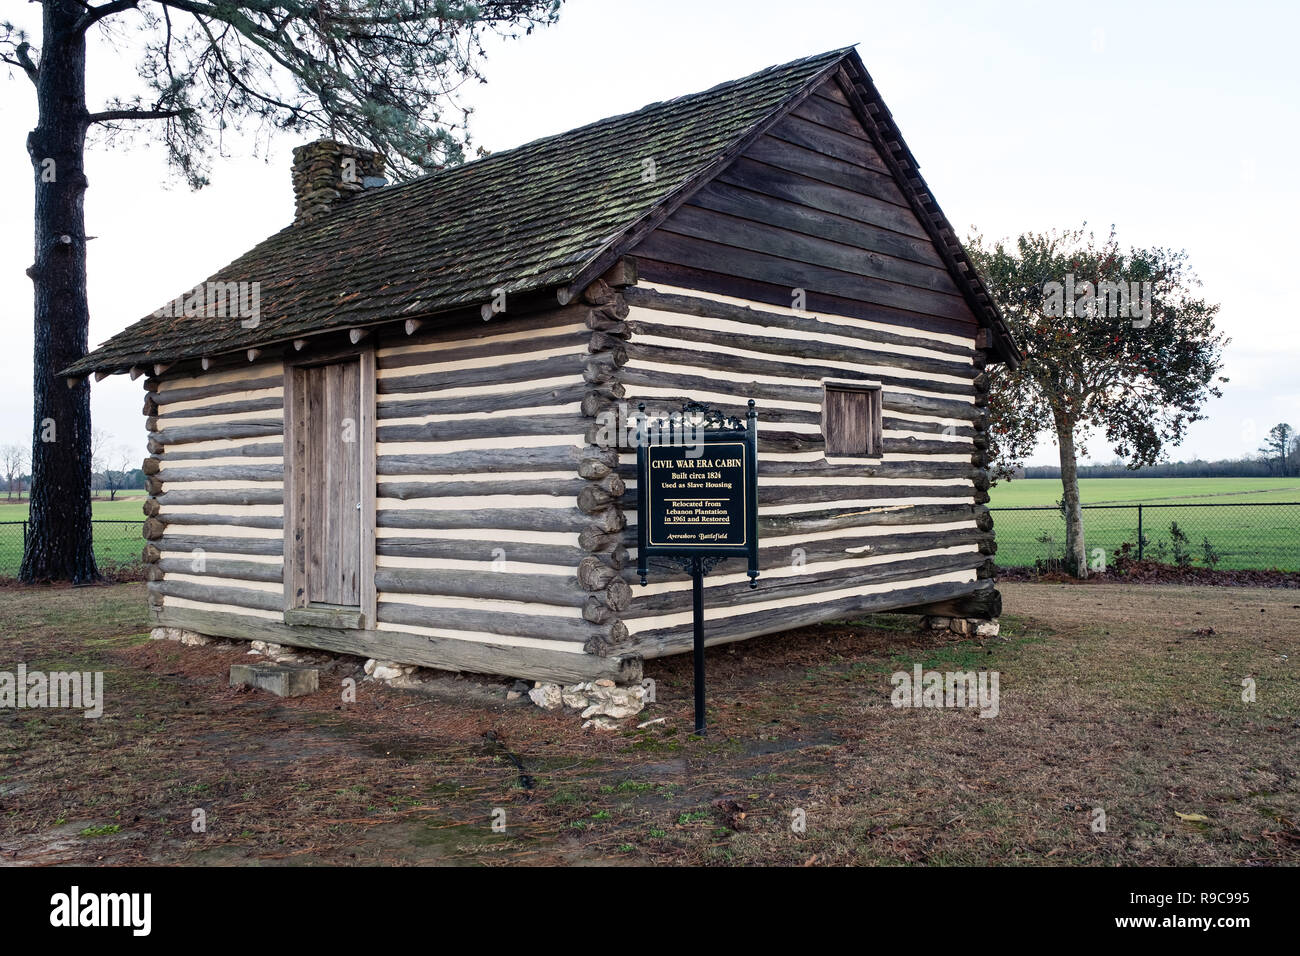 Civil War Era Slave Cabin at Averasboro Battle Field, NC-Circa 2018: Civil War Battlefield and Monuments Stock Photo